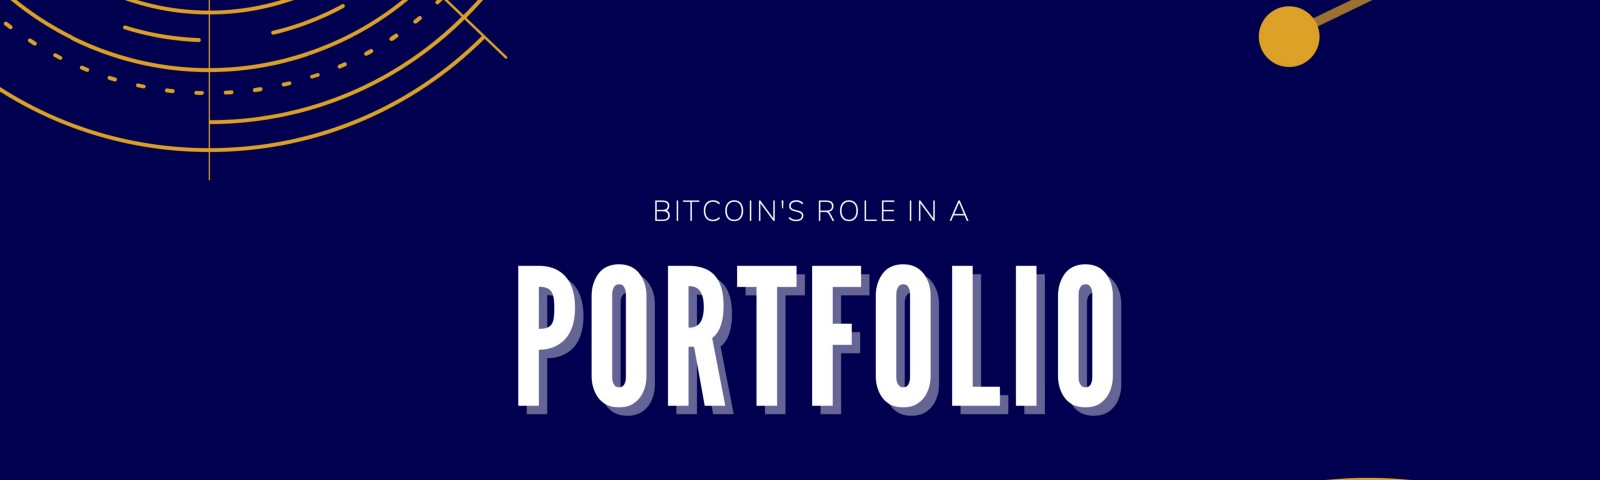 Bitcoin's role in a portfolio